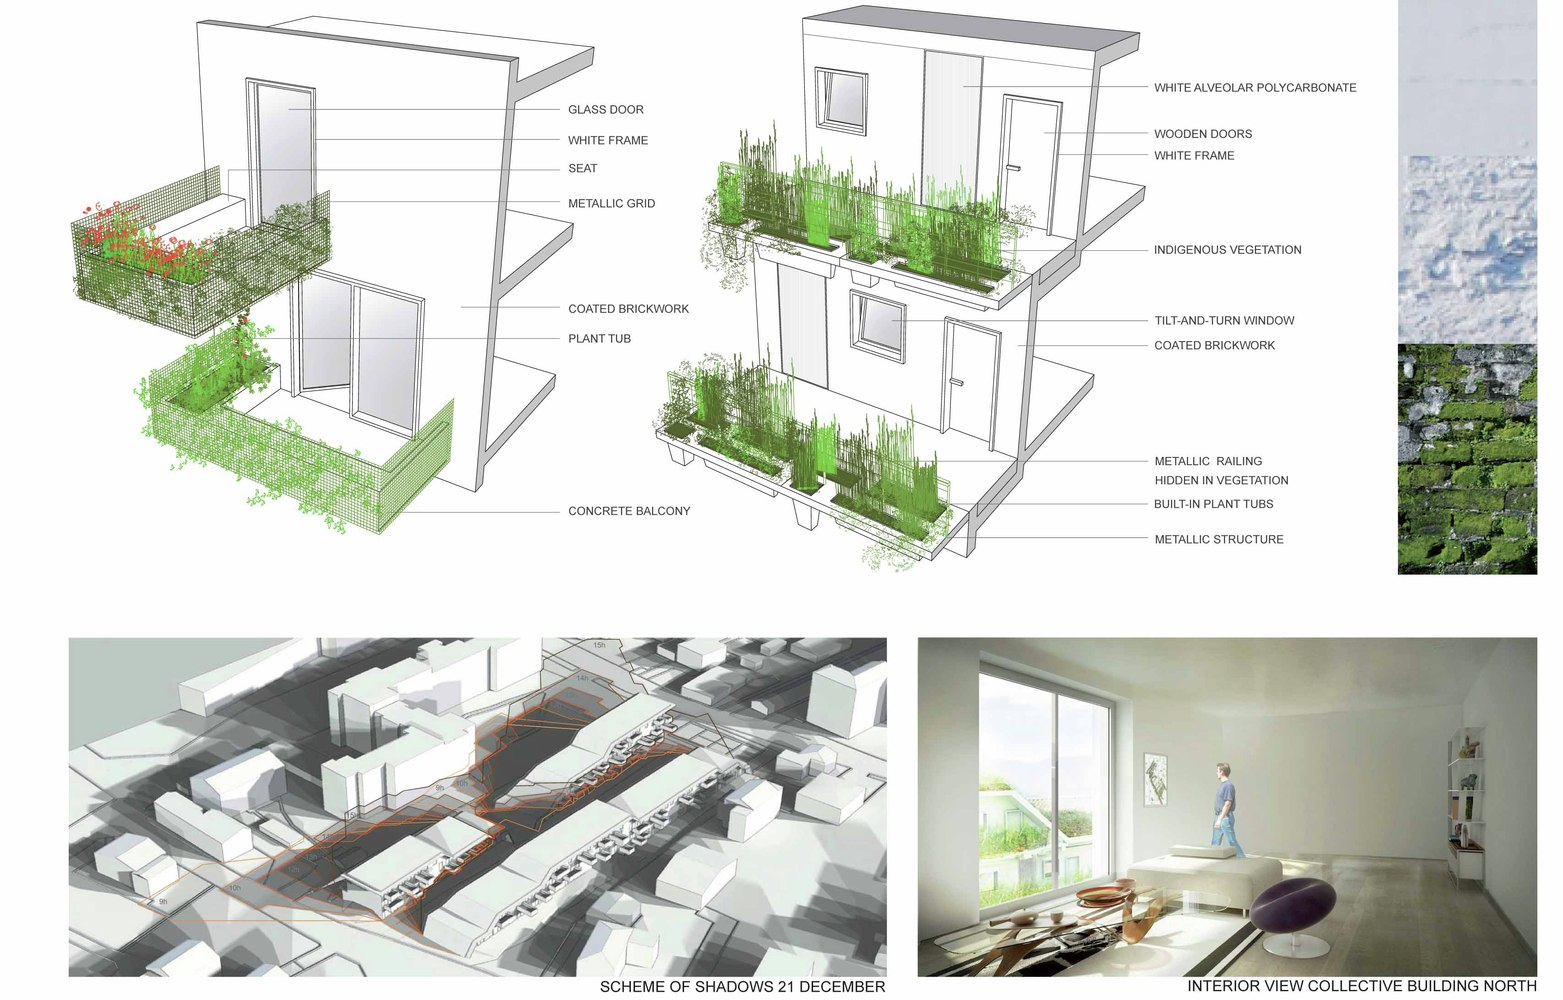 Affordable green housing off duncan lewis scape architecturediagrams 01